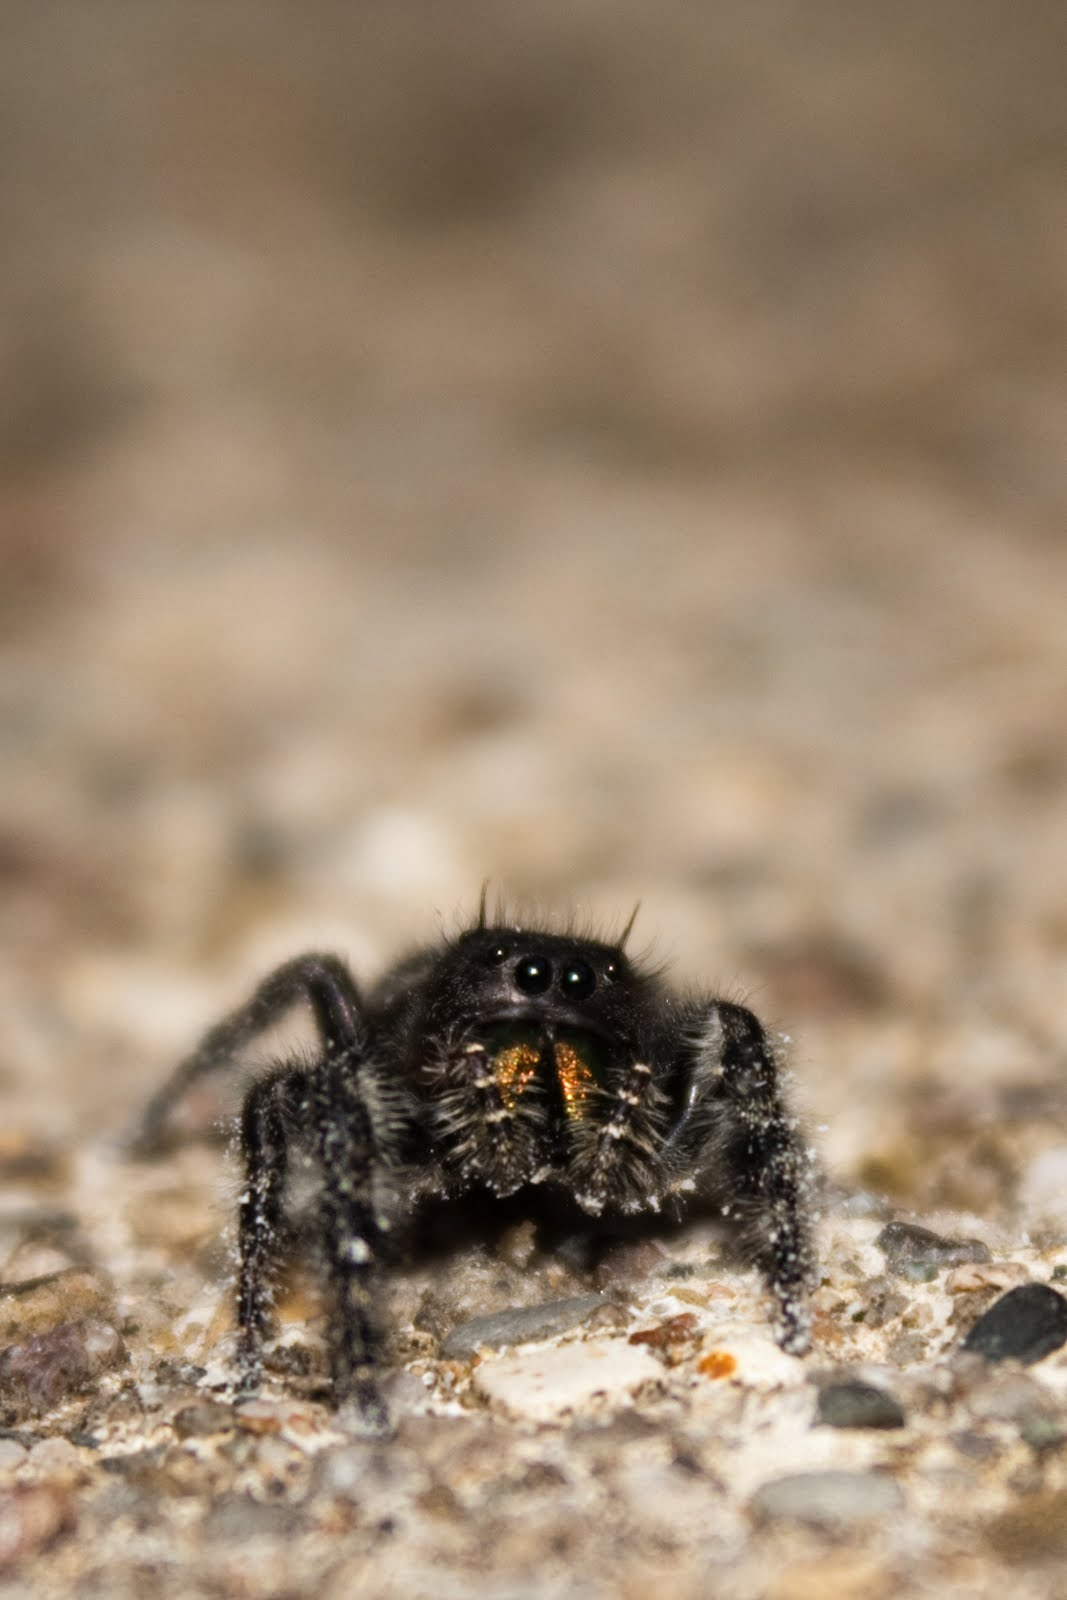 Submitted Pics - Jumping Spiders  Michigan Spiders-7199